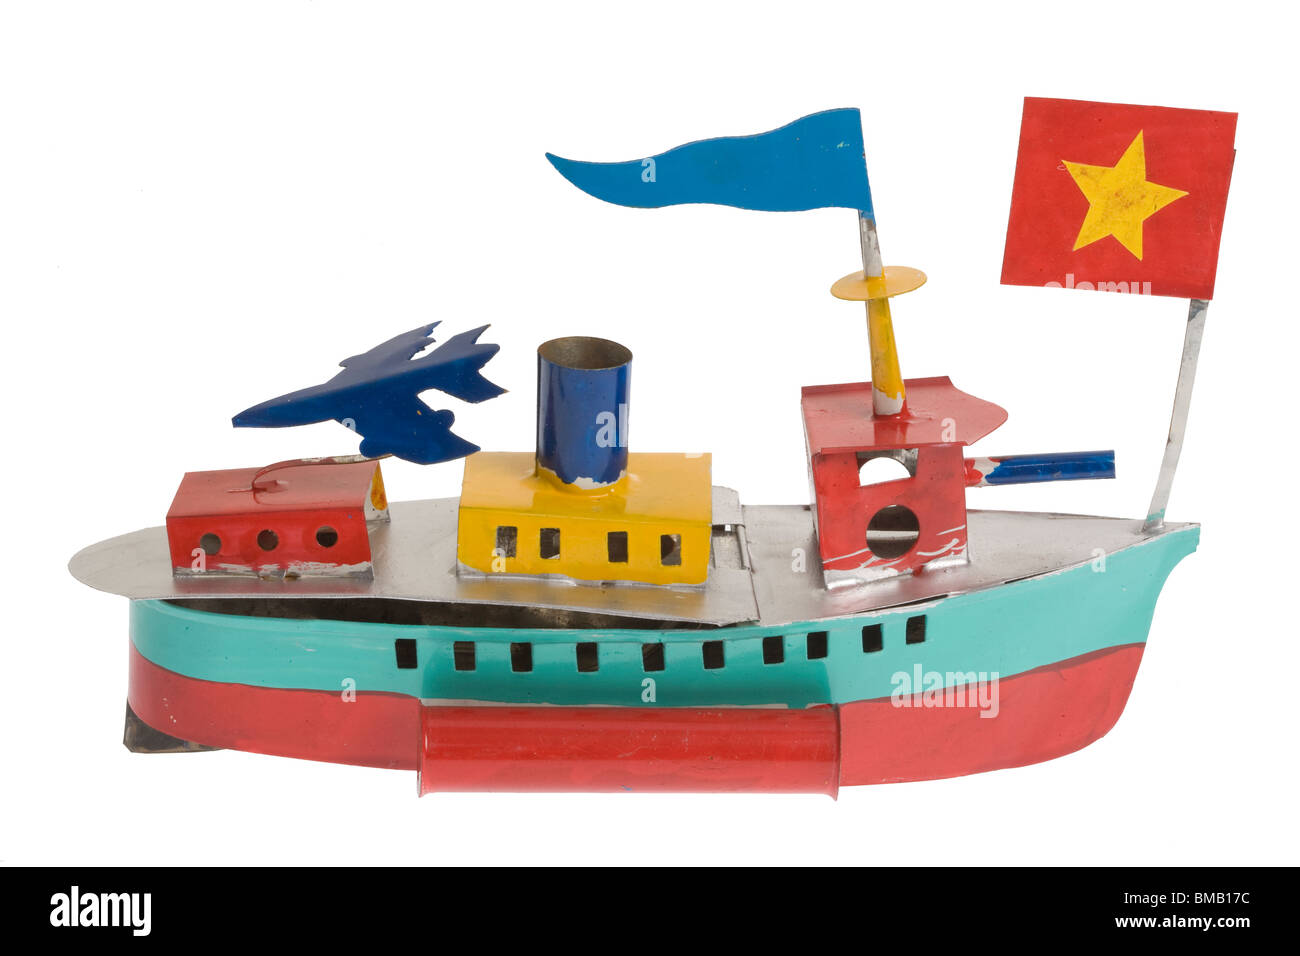 recycled scrap metal tin toy boat - Stock Image